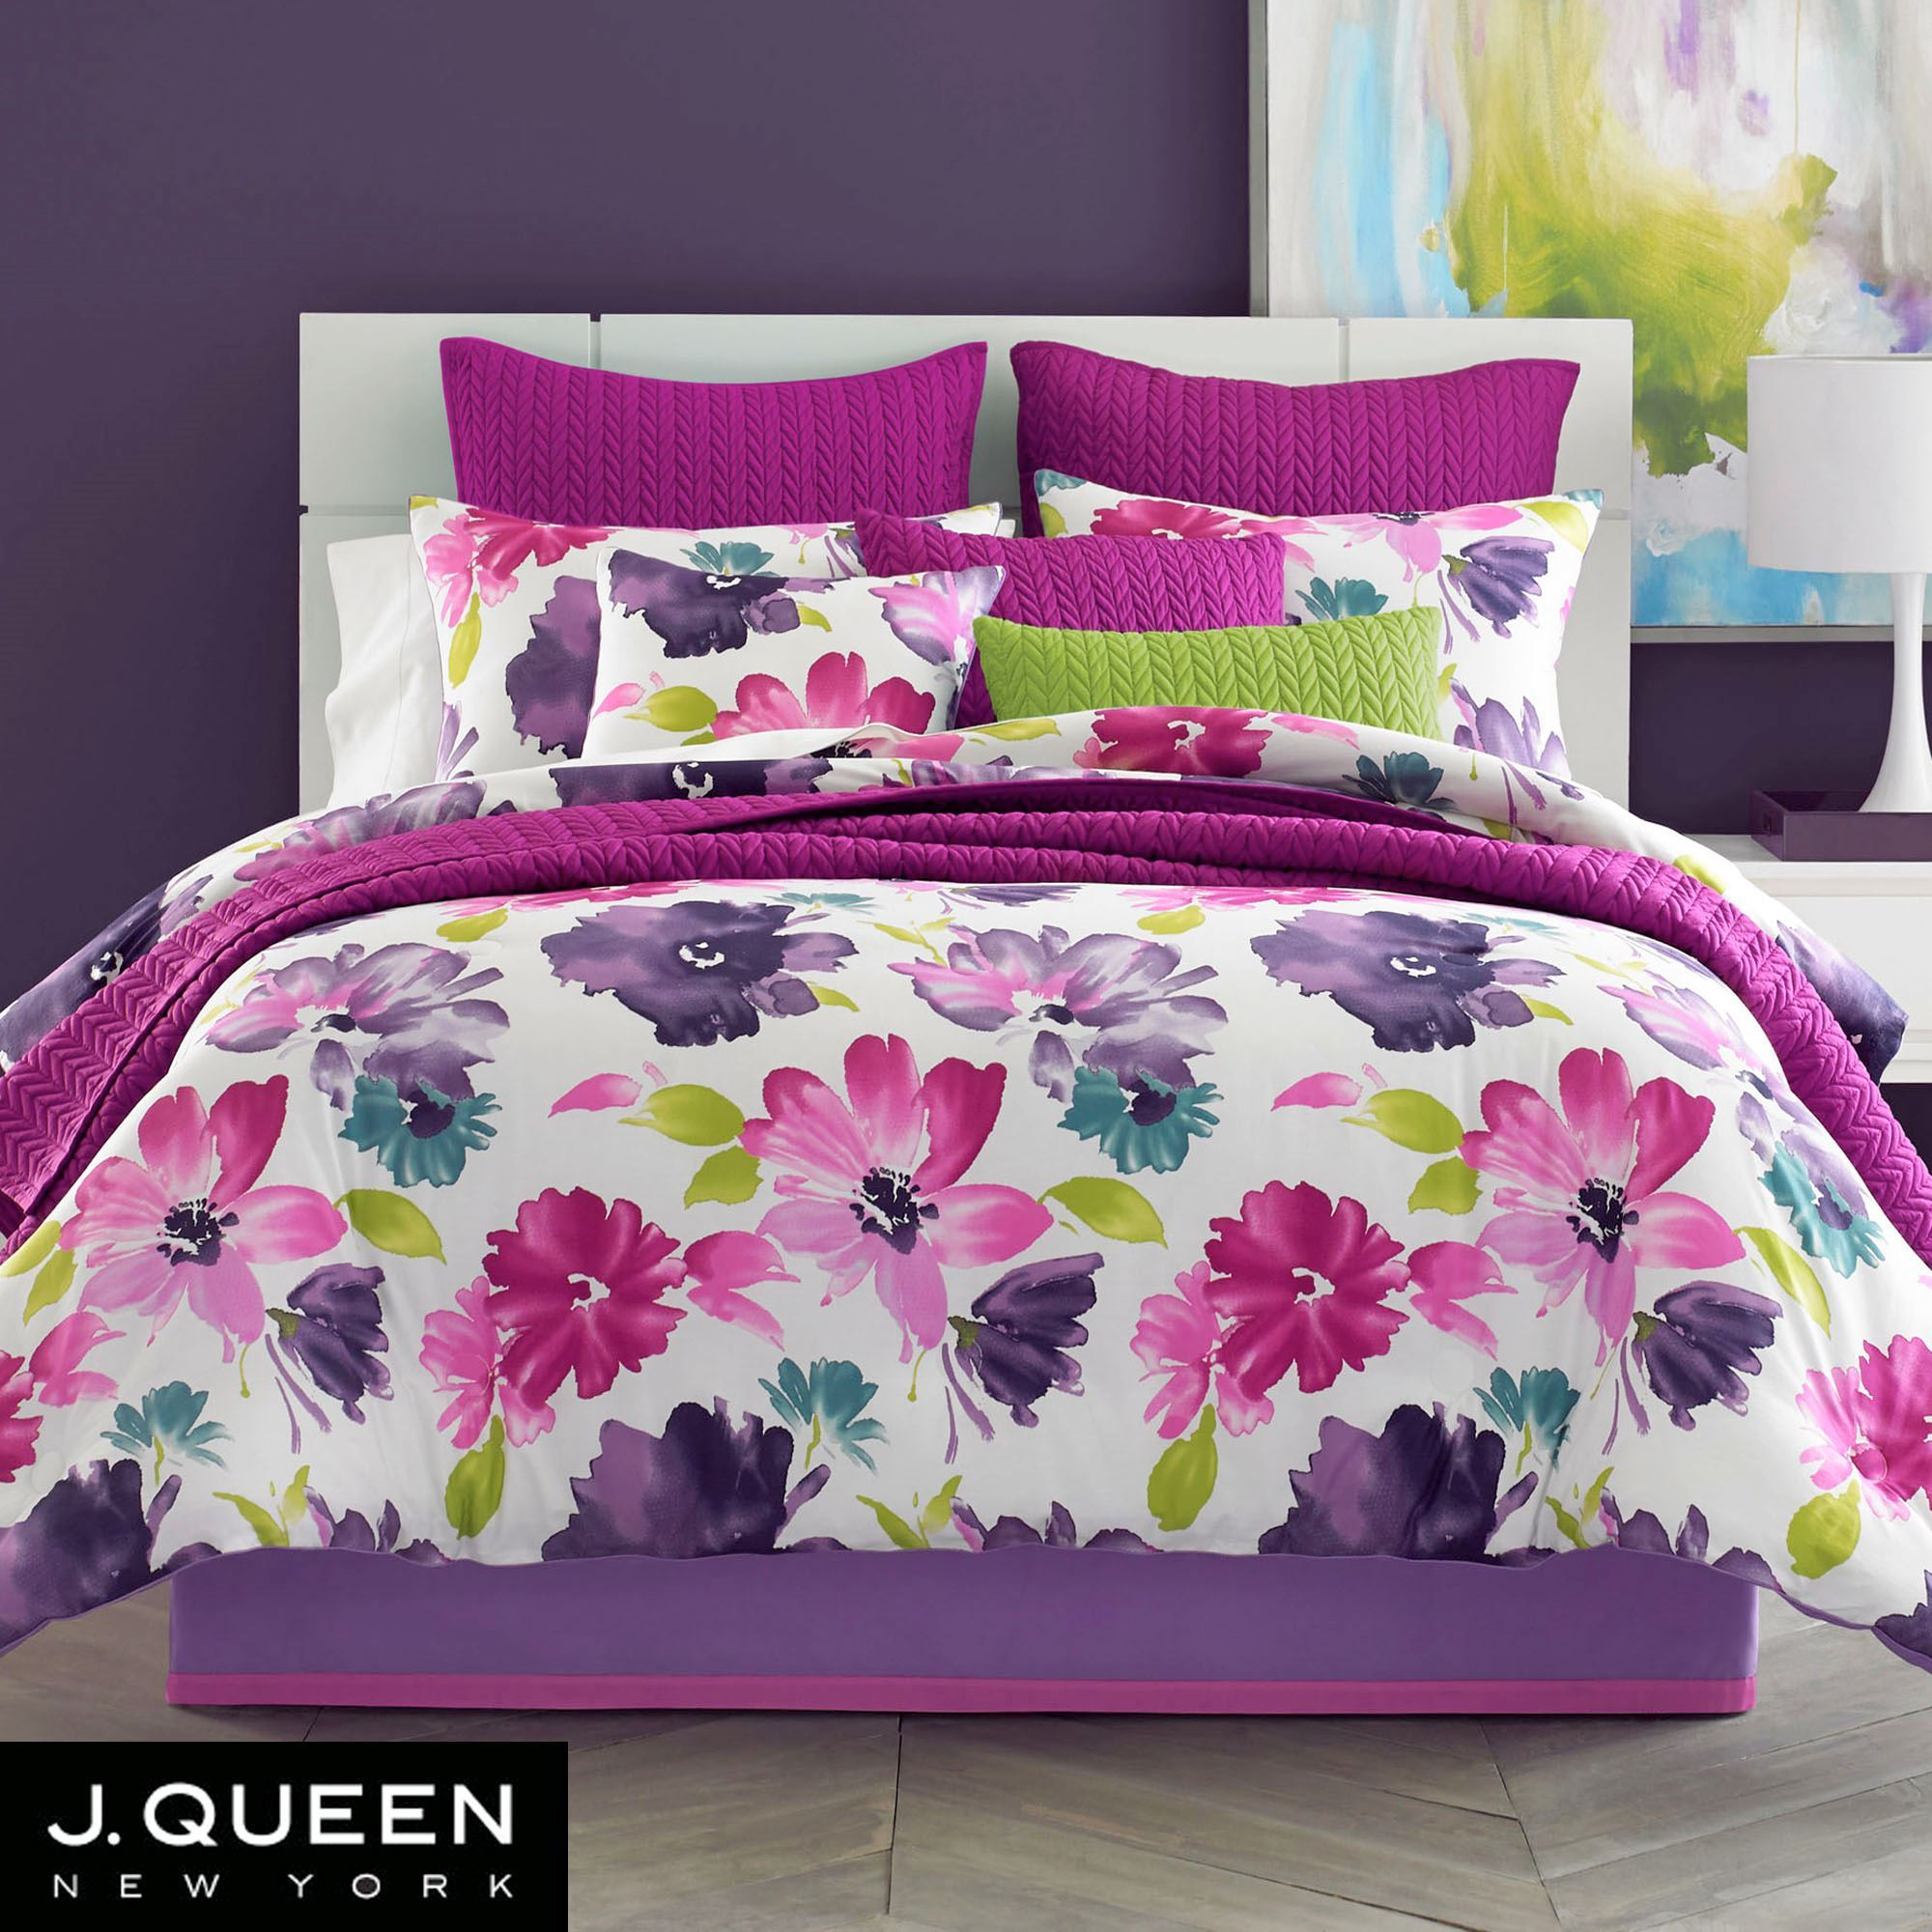 with dahlia features colors your custom or products nature graphic comforter in cabbage floral a yours burst customize duvet designer purple monogram inspired style personalized bedding